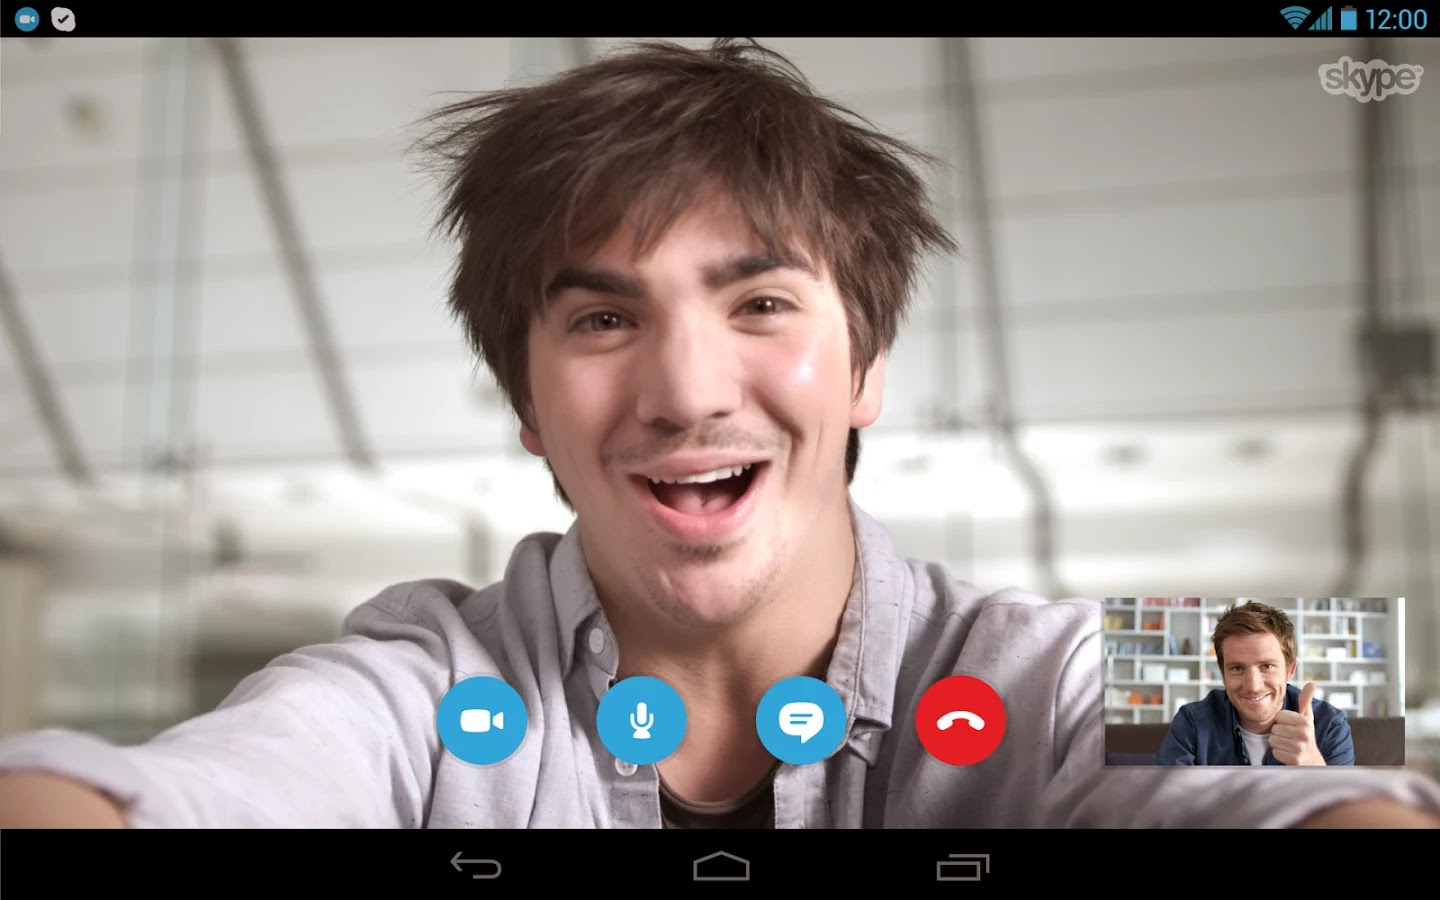 Skype - free IM & video calls v5.10.0.15007